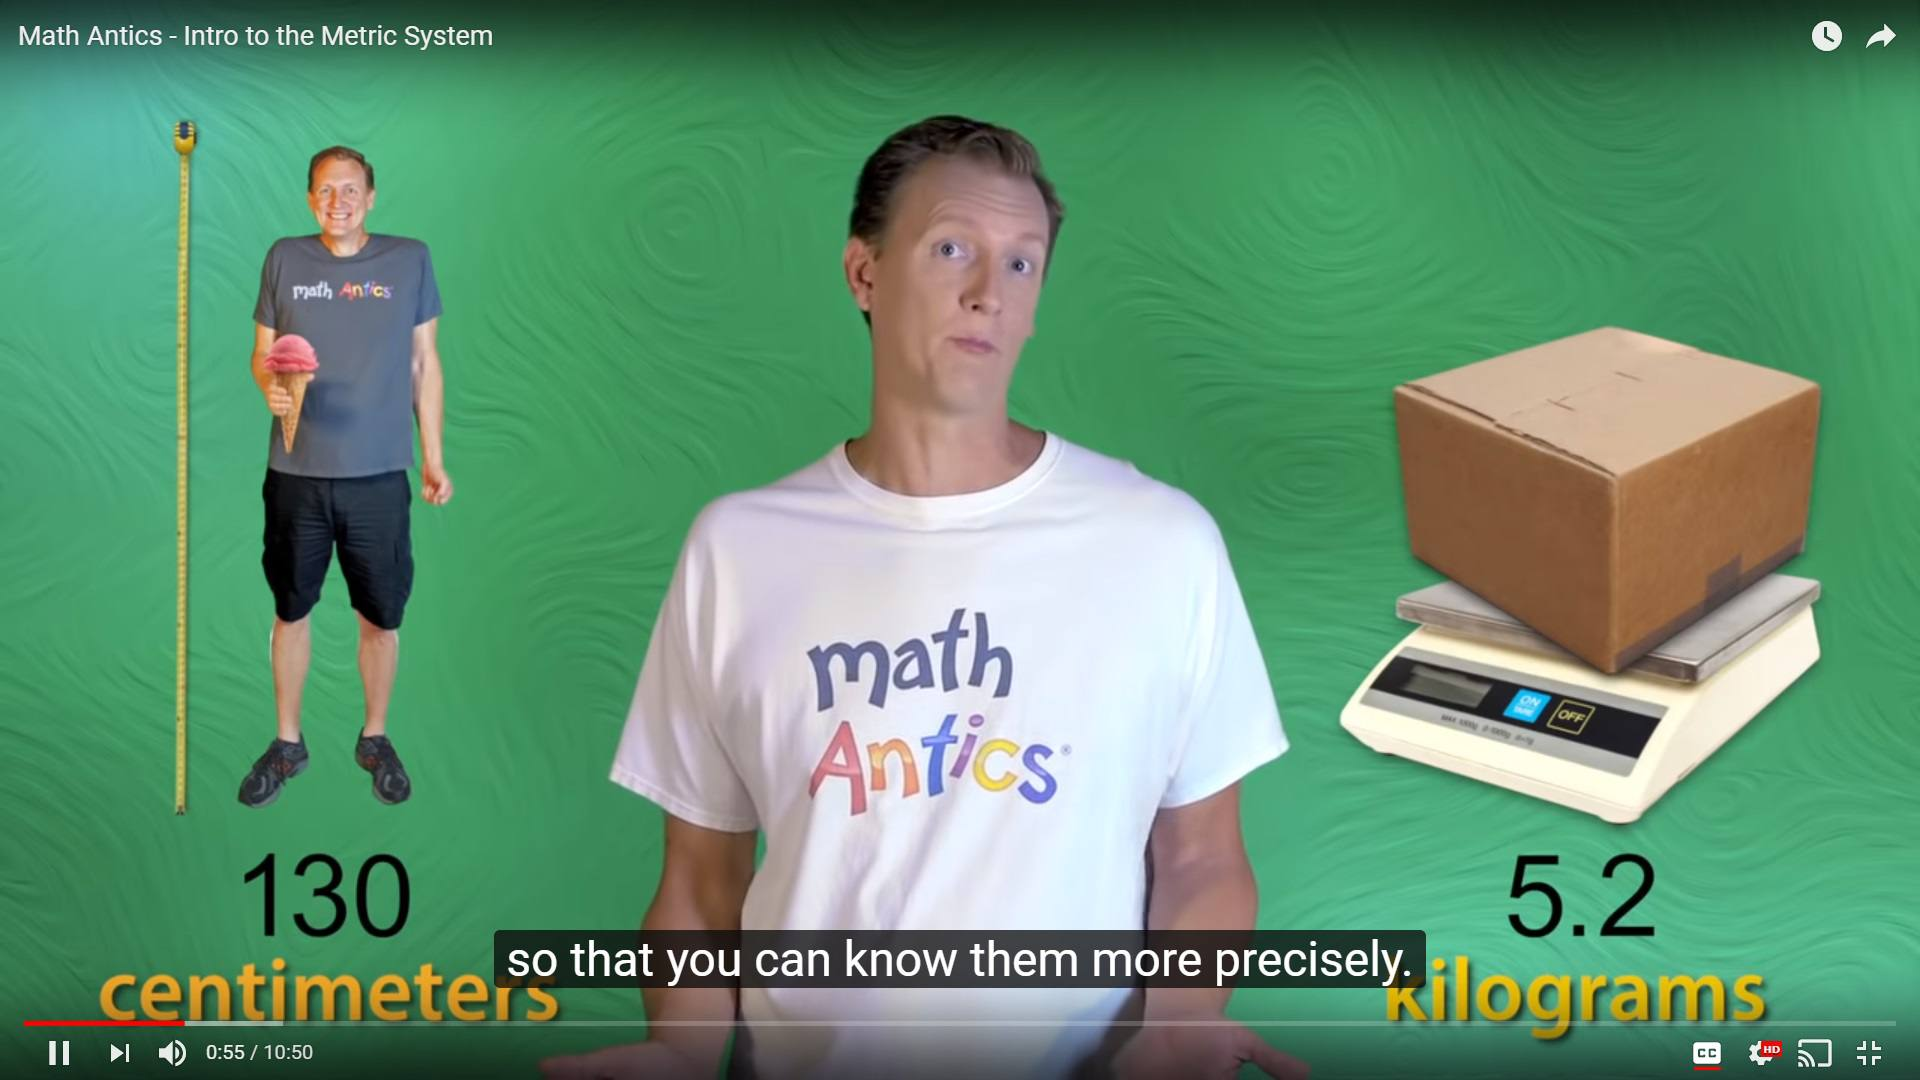 Man talking about measurement units in front of a screen with a man next to a tape measure and a box on a scale